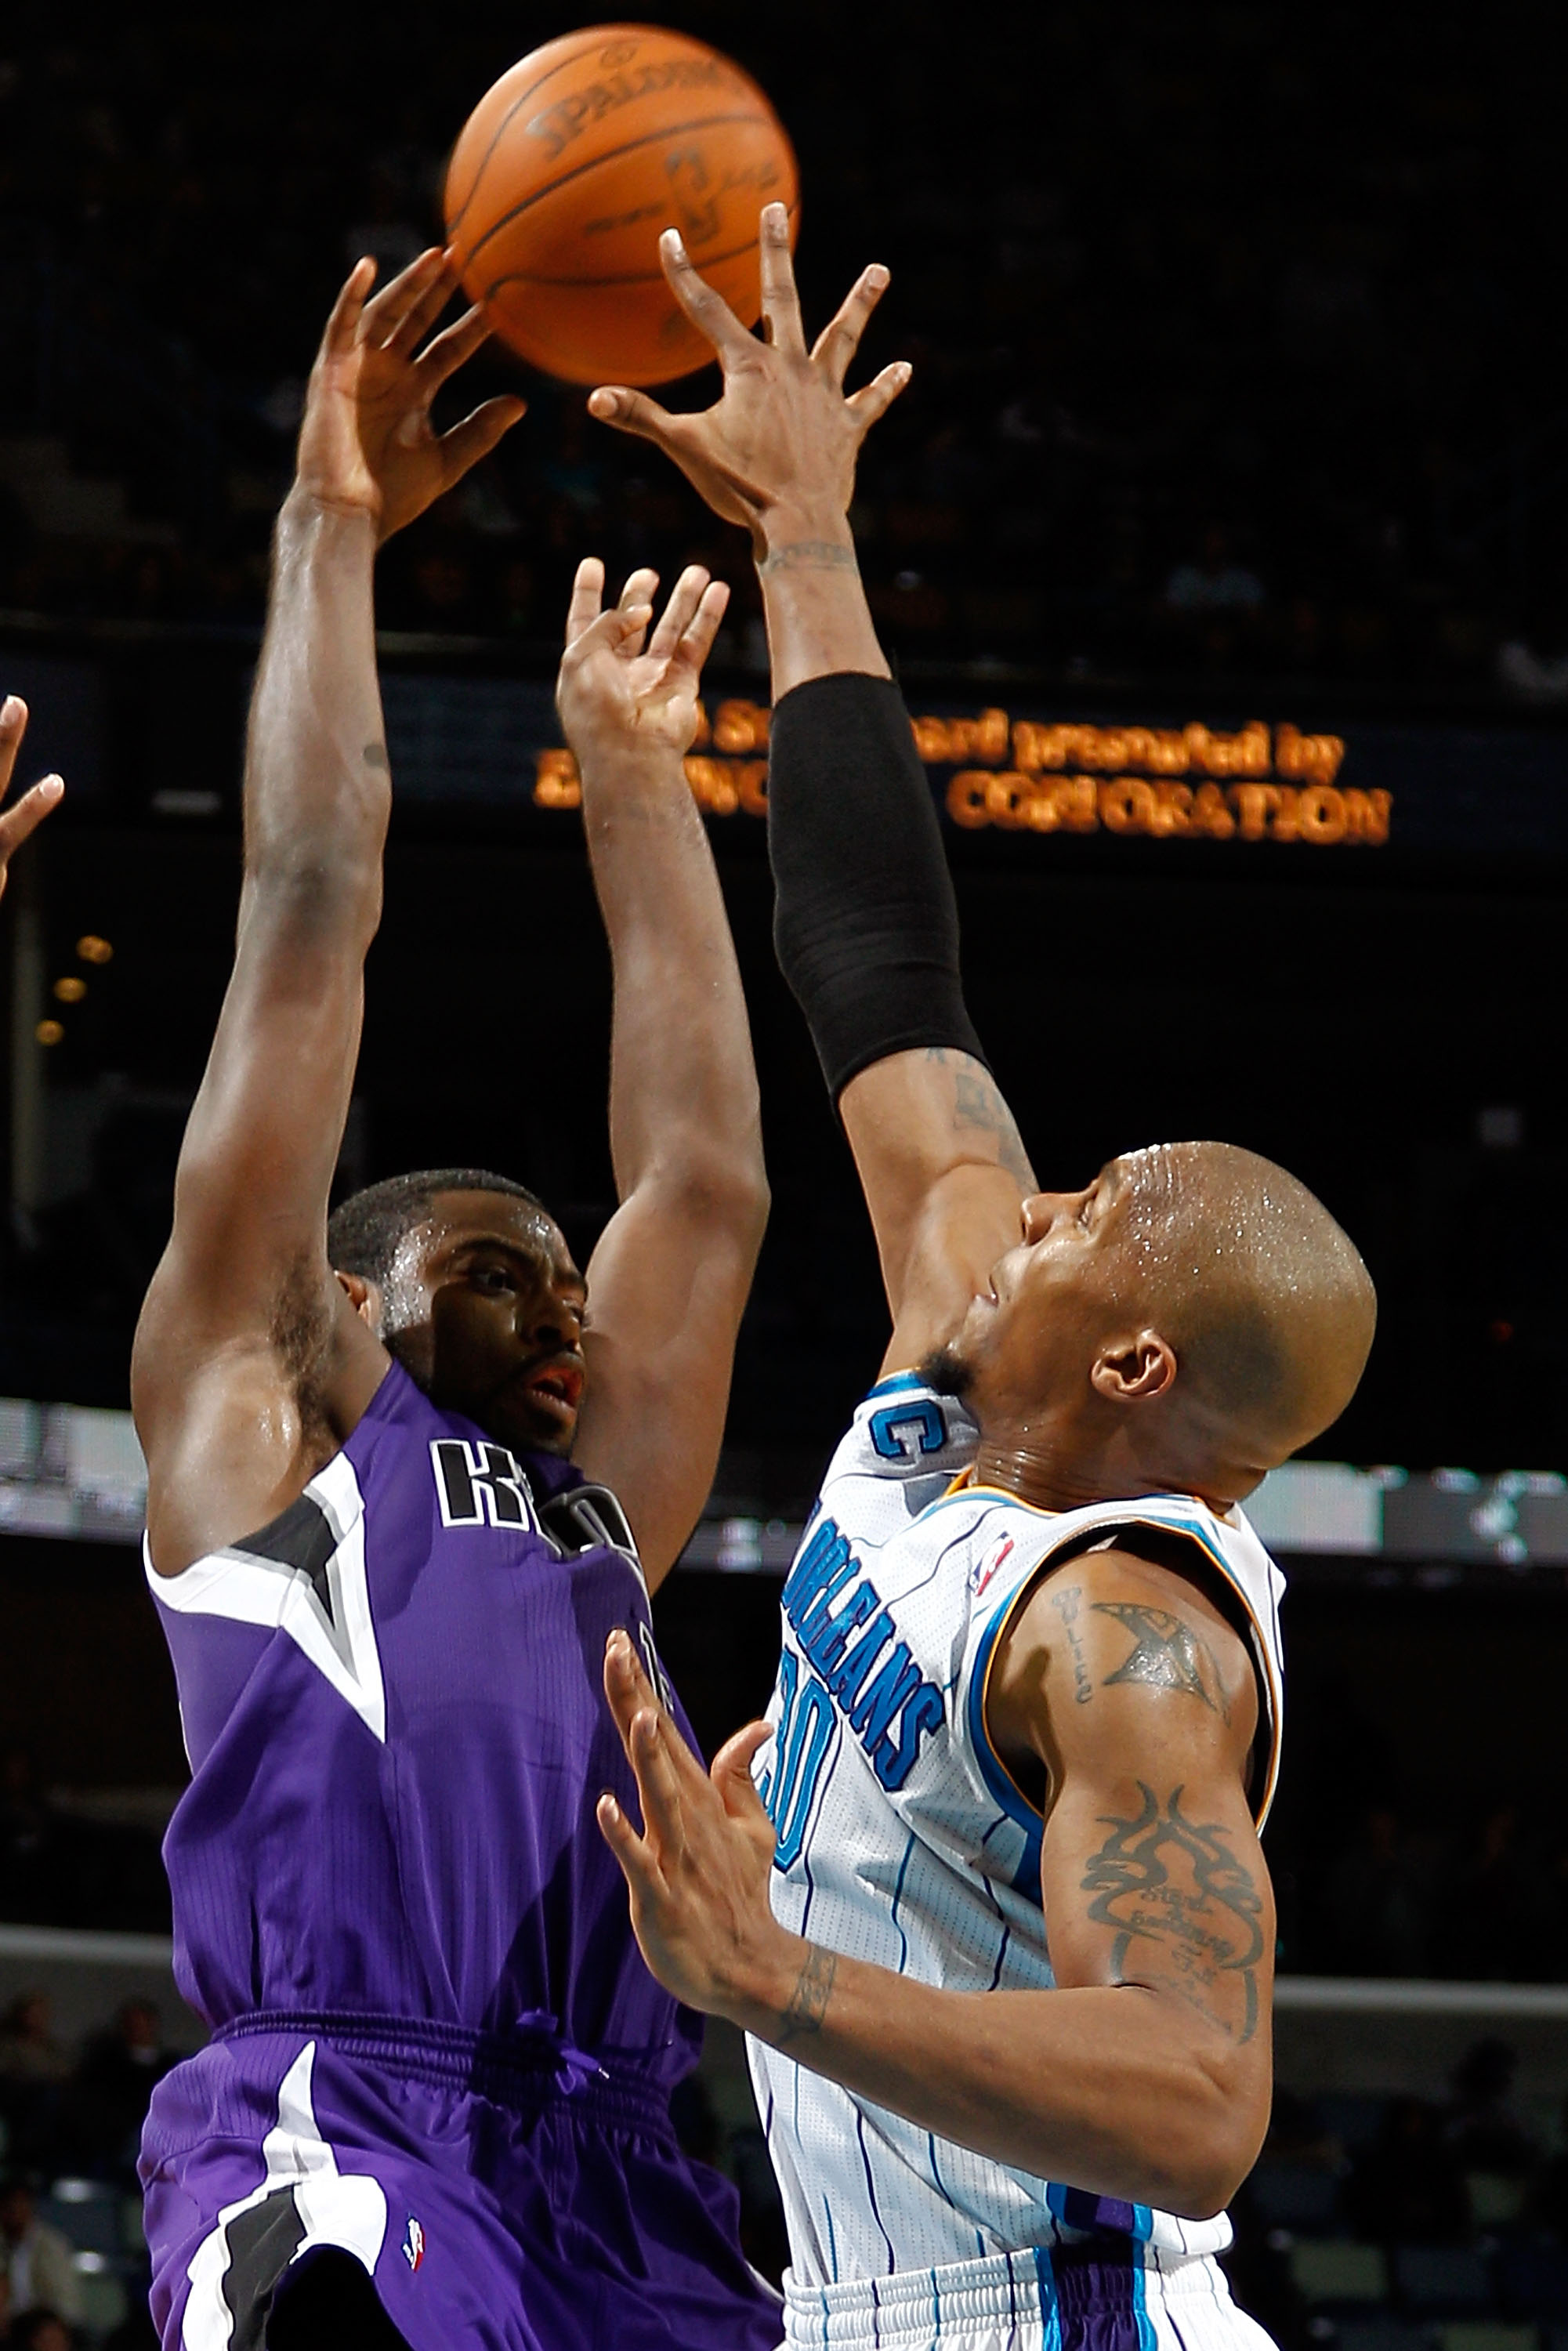 NEW ORLEANS, LA - DECEMBER 15:  Tyreke Evans #13 of the Sacramento Kings passes the ball over David West #30 of the New Orleans Hornets  at the New Orleans Arena on December 15, 2010 in New Orleans, Louisiana.  NOTE TO USER: User expressly acknowledges an